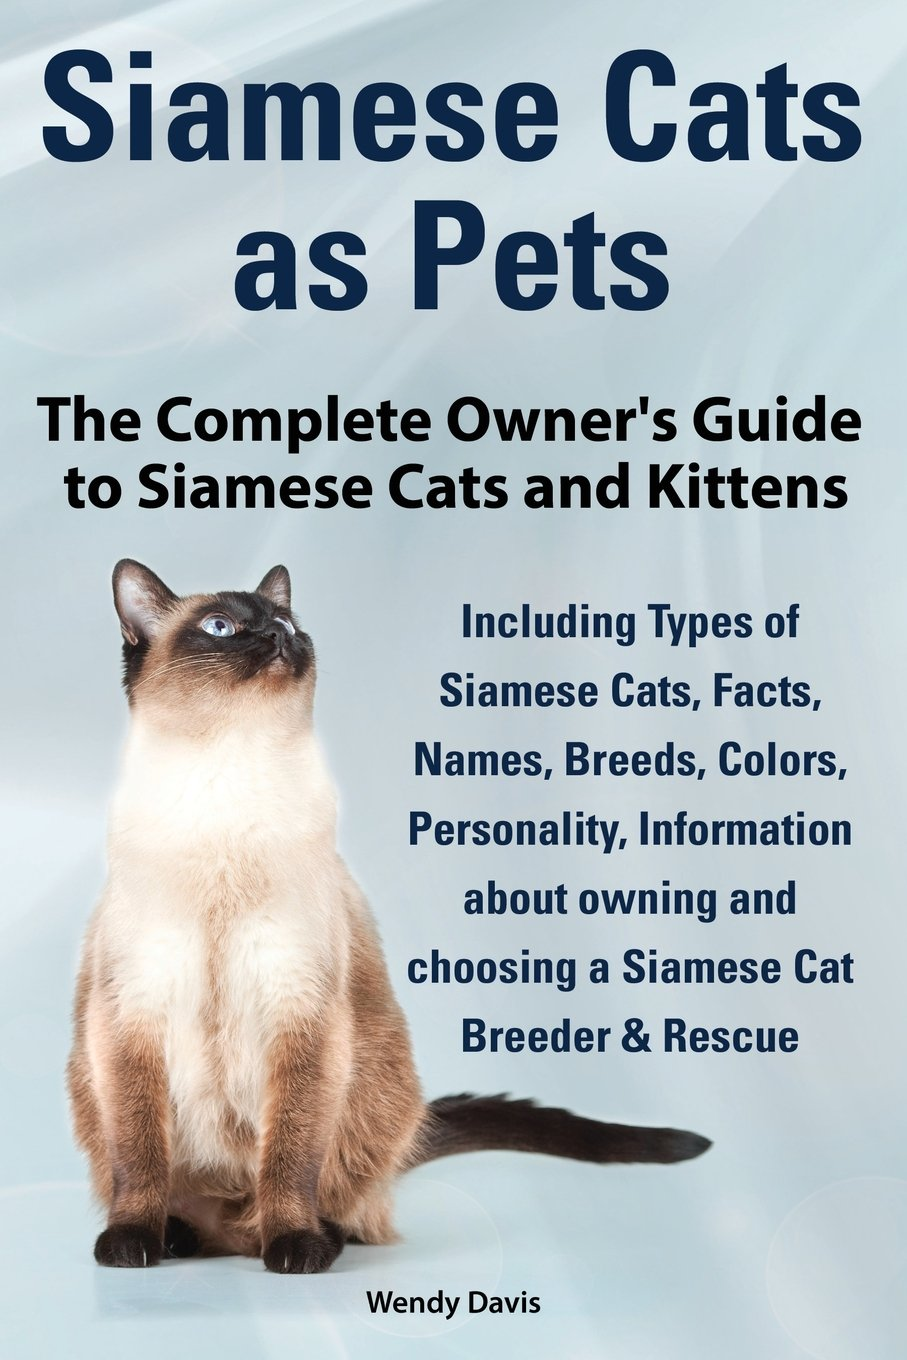 Siamese Cats as Pets plete Owner s Guide to Siamese Cats and